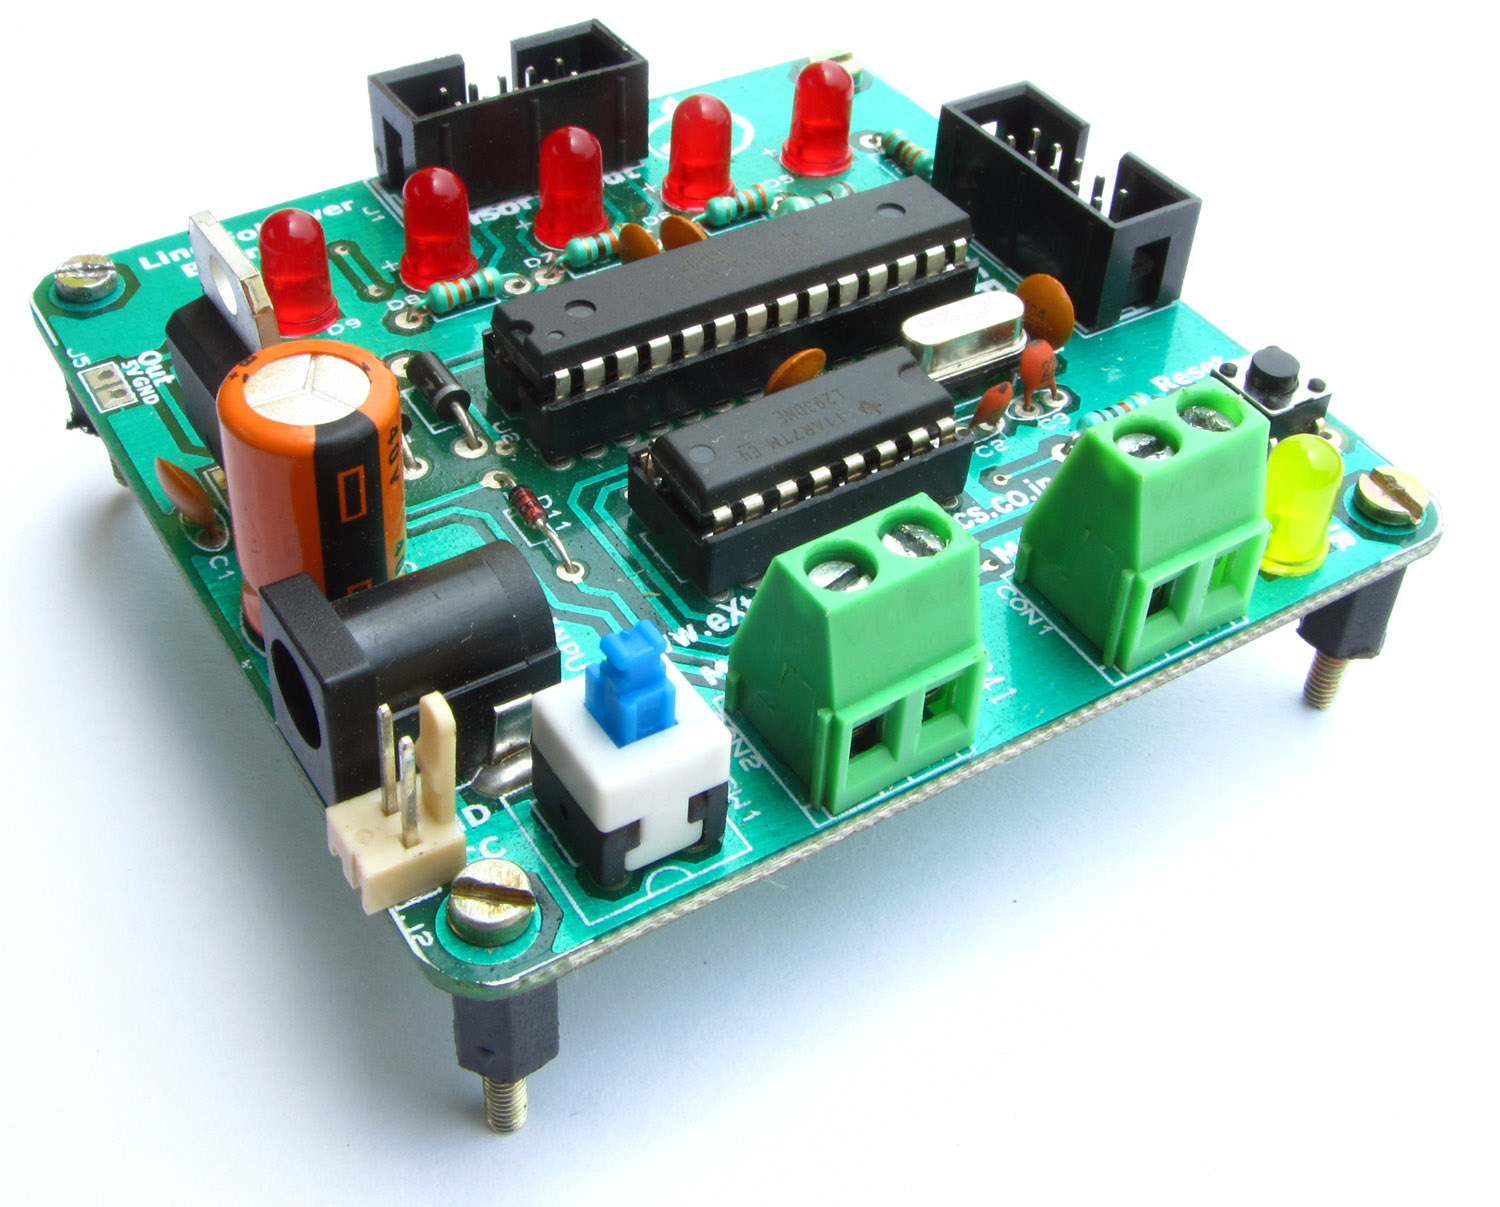 Arduino Rf Ir Remote Control in addition What Do I Need For A Basic Rf Circuit further Apc Rack Pdu 2g Metered Zerou 22 0kw32a 17 3kw24a 230v 30 C13 12 C19 Ap8886 moreover  besides Fm Remote Encoder Decoder Circuit. on rf remote control circuit